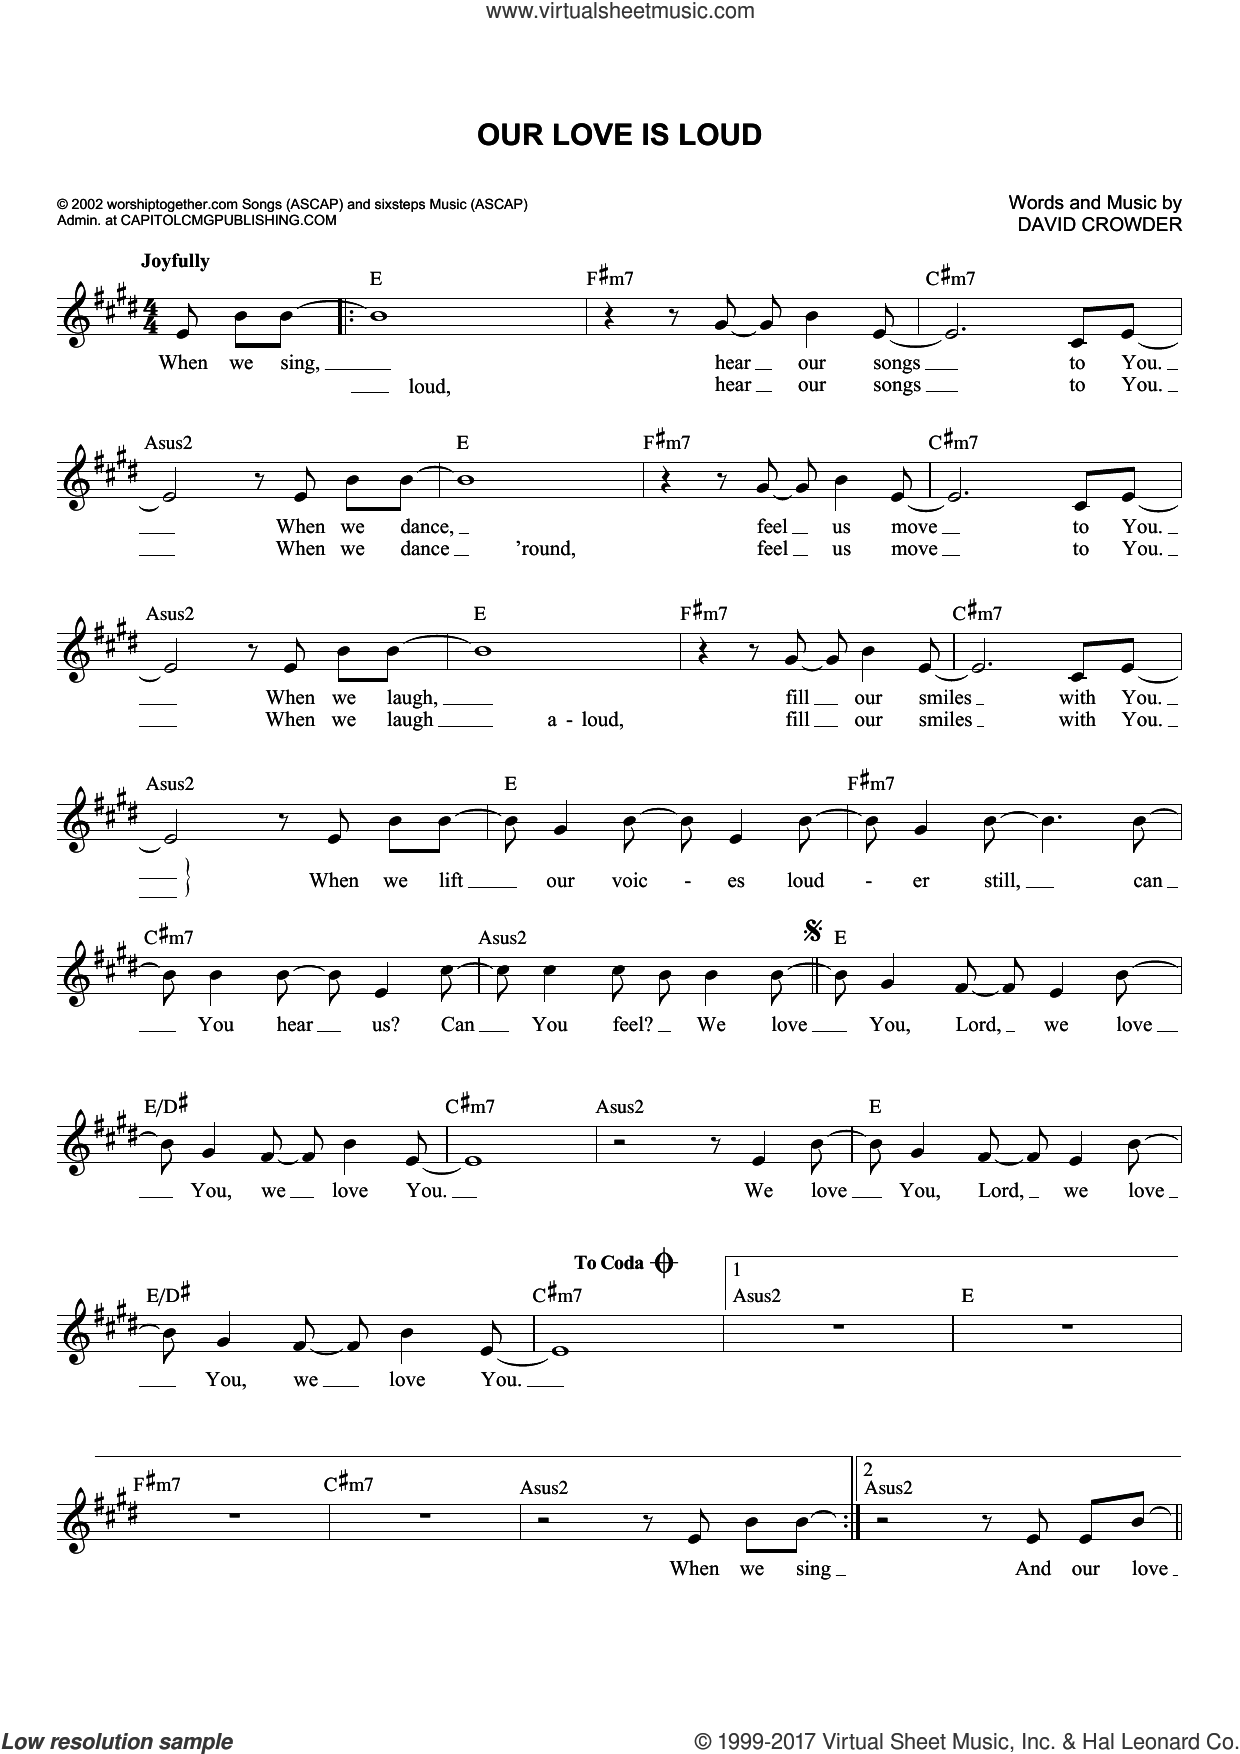 Our Love Is Loud sheet music for voice and other instruments (fake book) by David Crowder, intermediate skill level